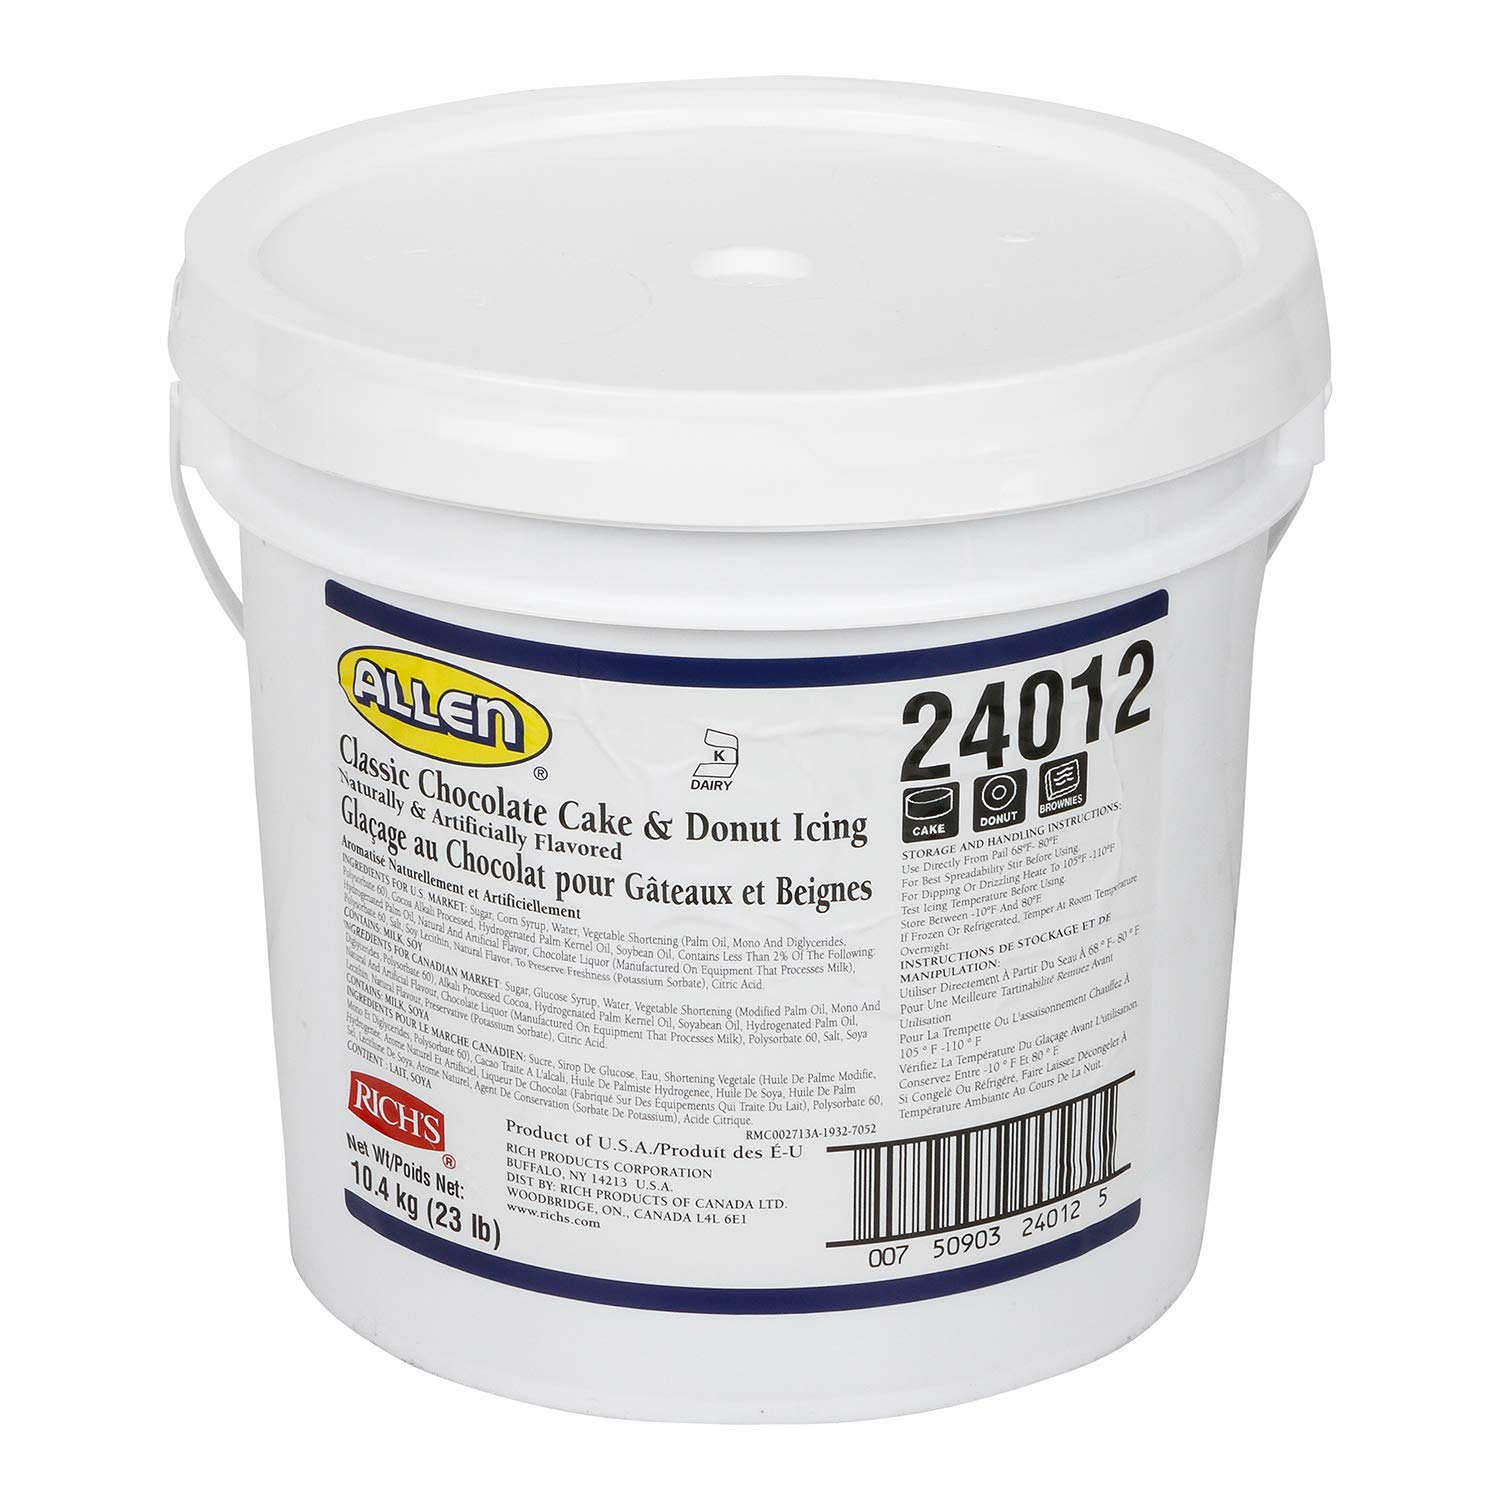 Rich's JW Allen Classic Chocolate Cake & Donut Icing, 23 lb Pail